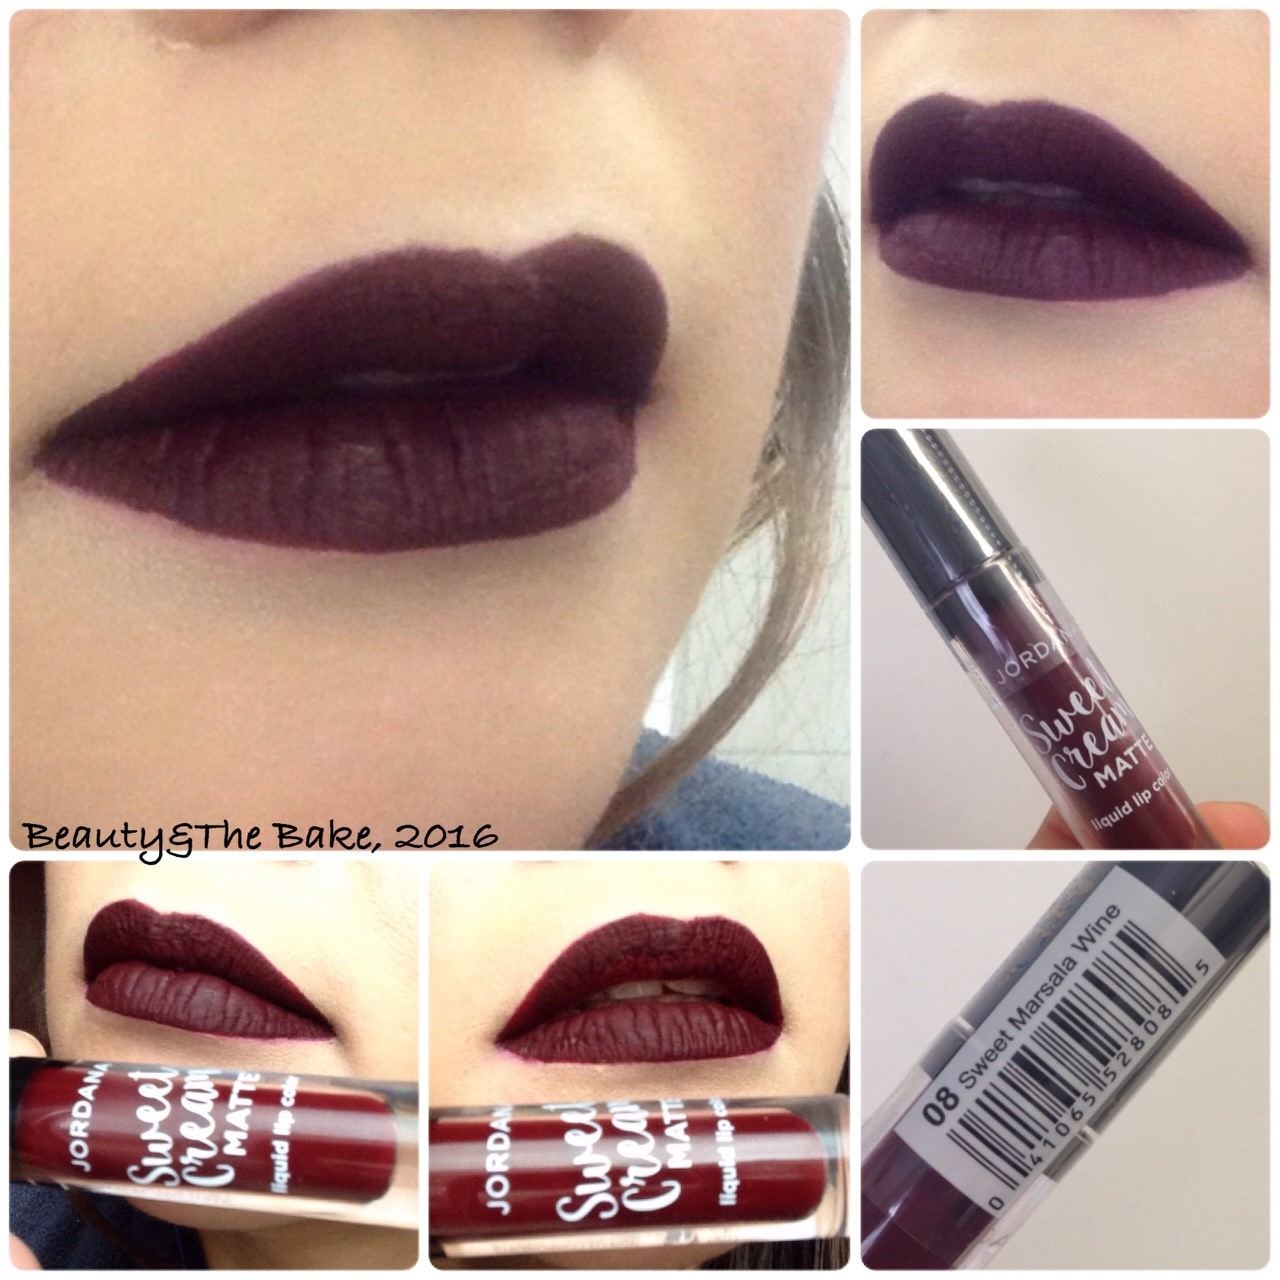 ... Jordana Sweet Cream Matte Liquid Lip Color 08 Sweet Marsala Wine Source MATTE LIP CREAM